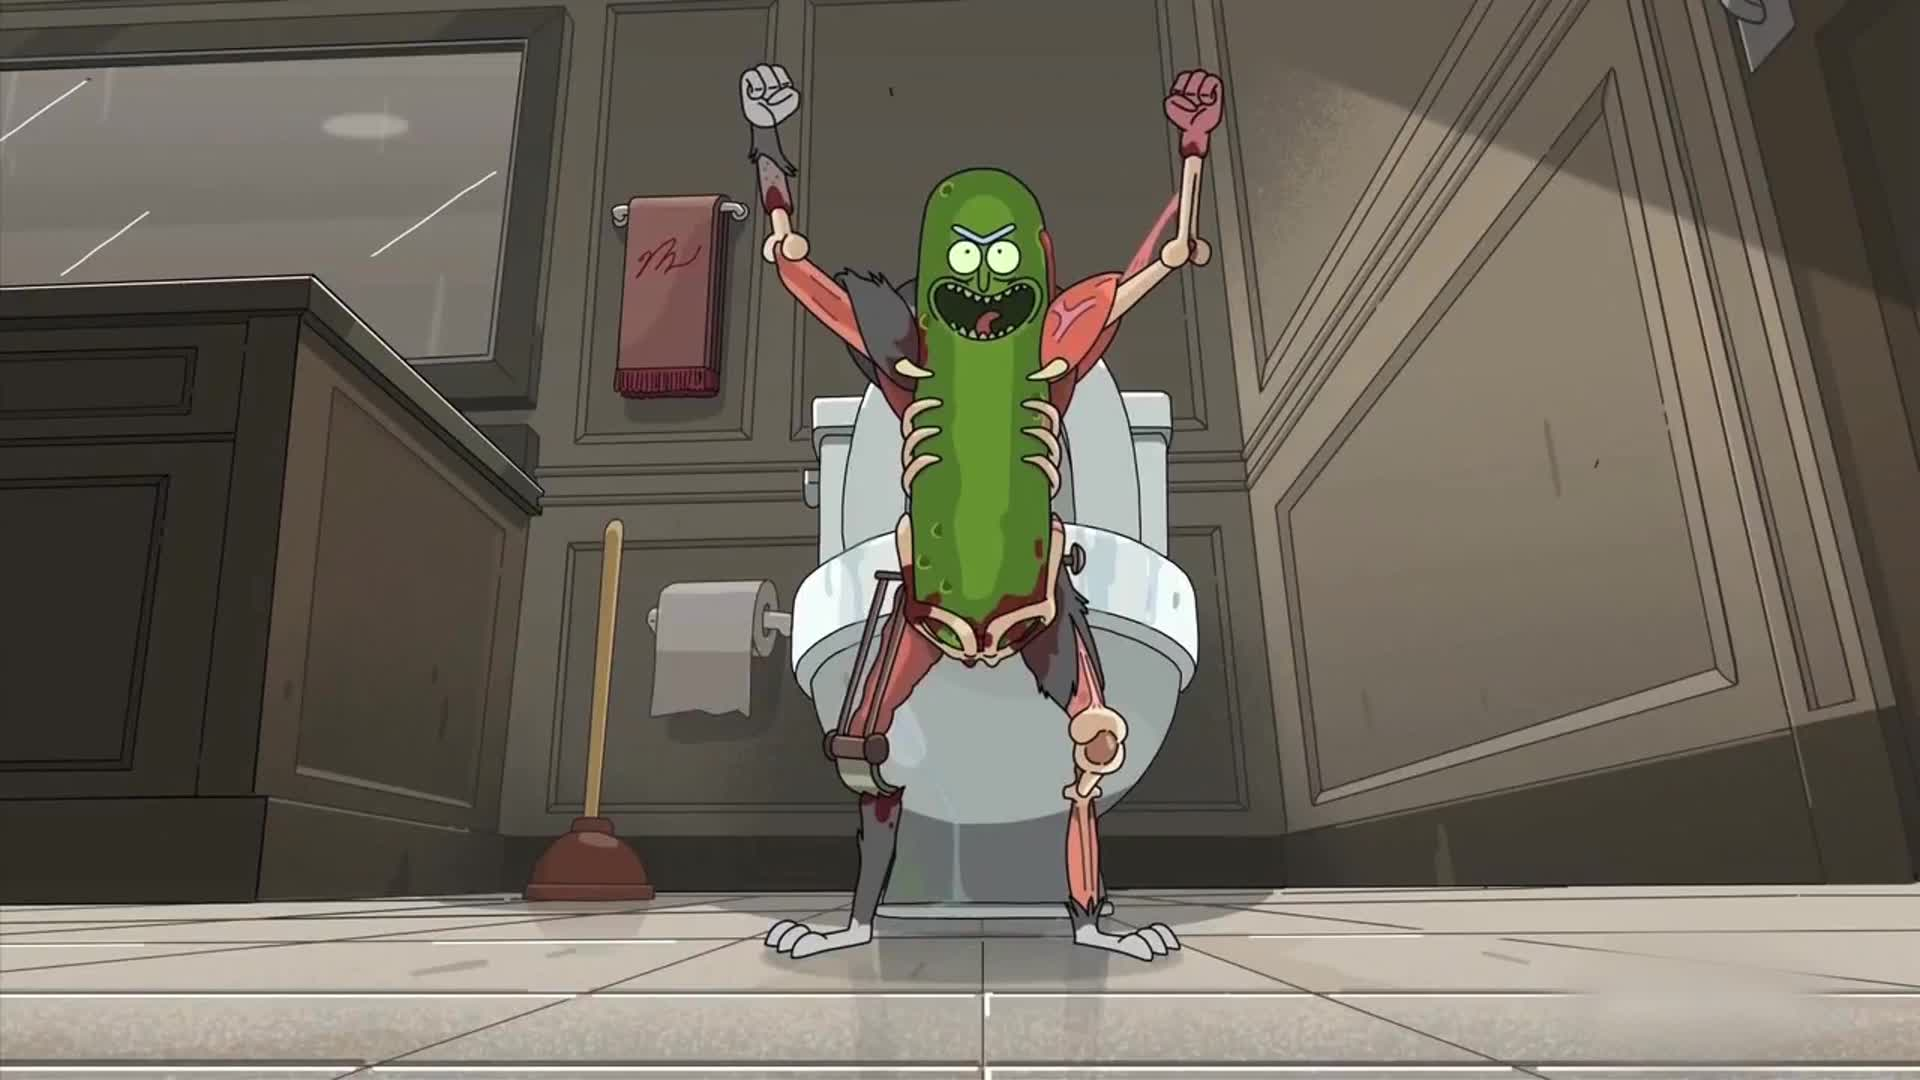 pickle-rick-and-ratatouille-collide-and-its-as-weird-as-youd-expect-social.jpg